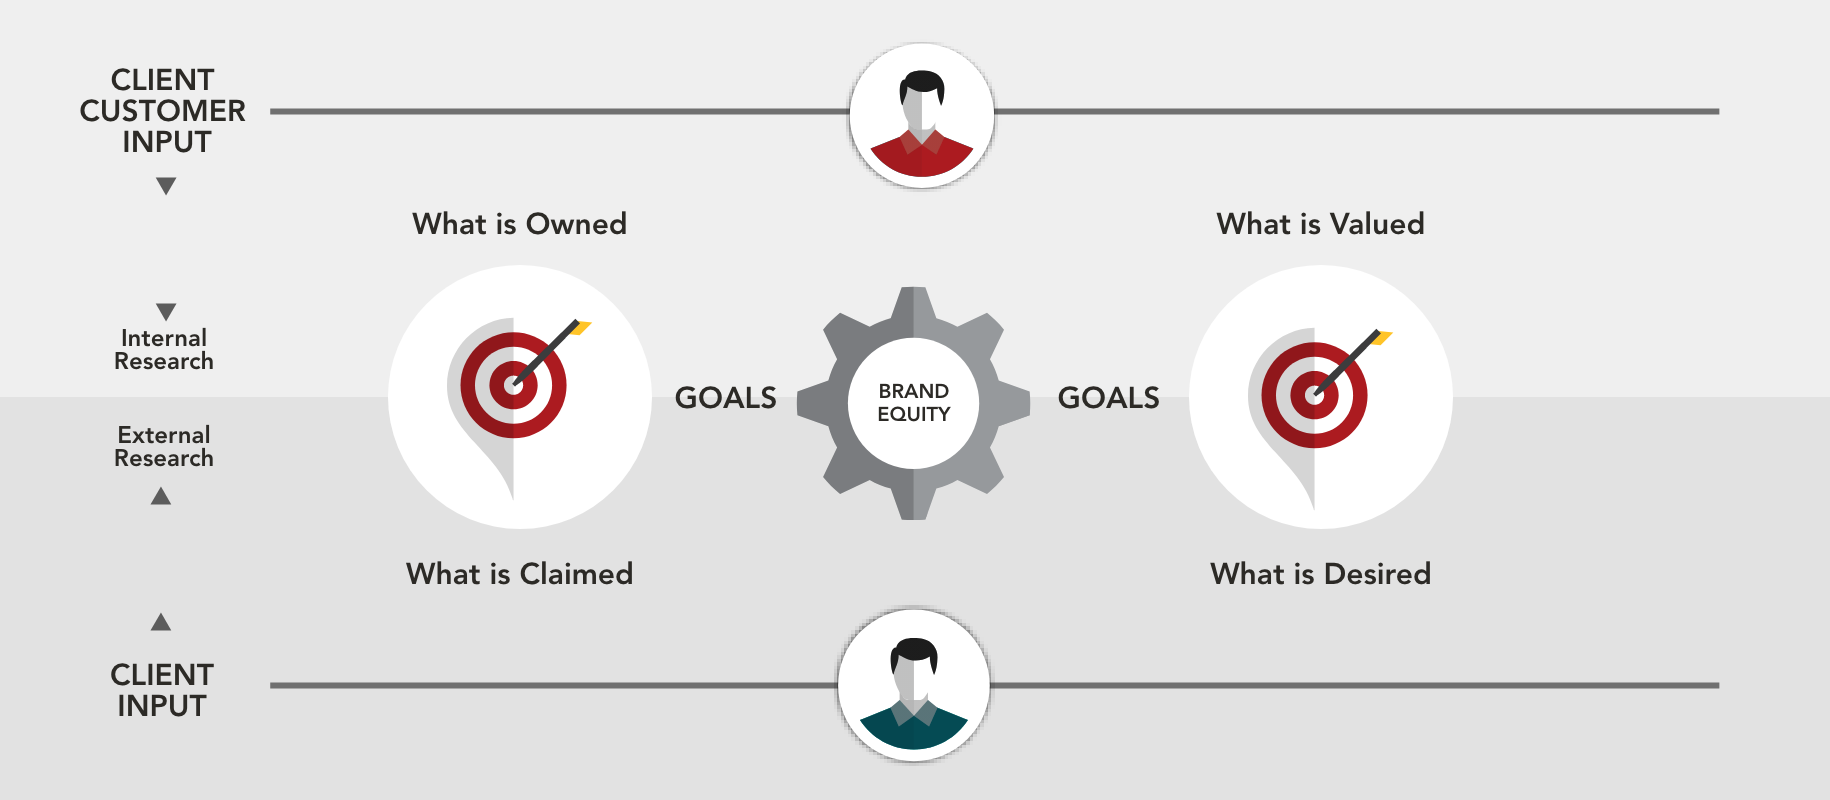 Diagram of brand equity goals with animated icons and shapes